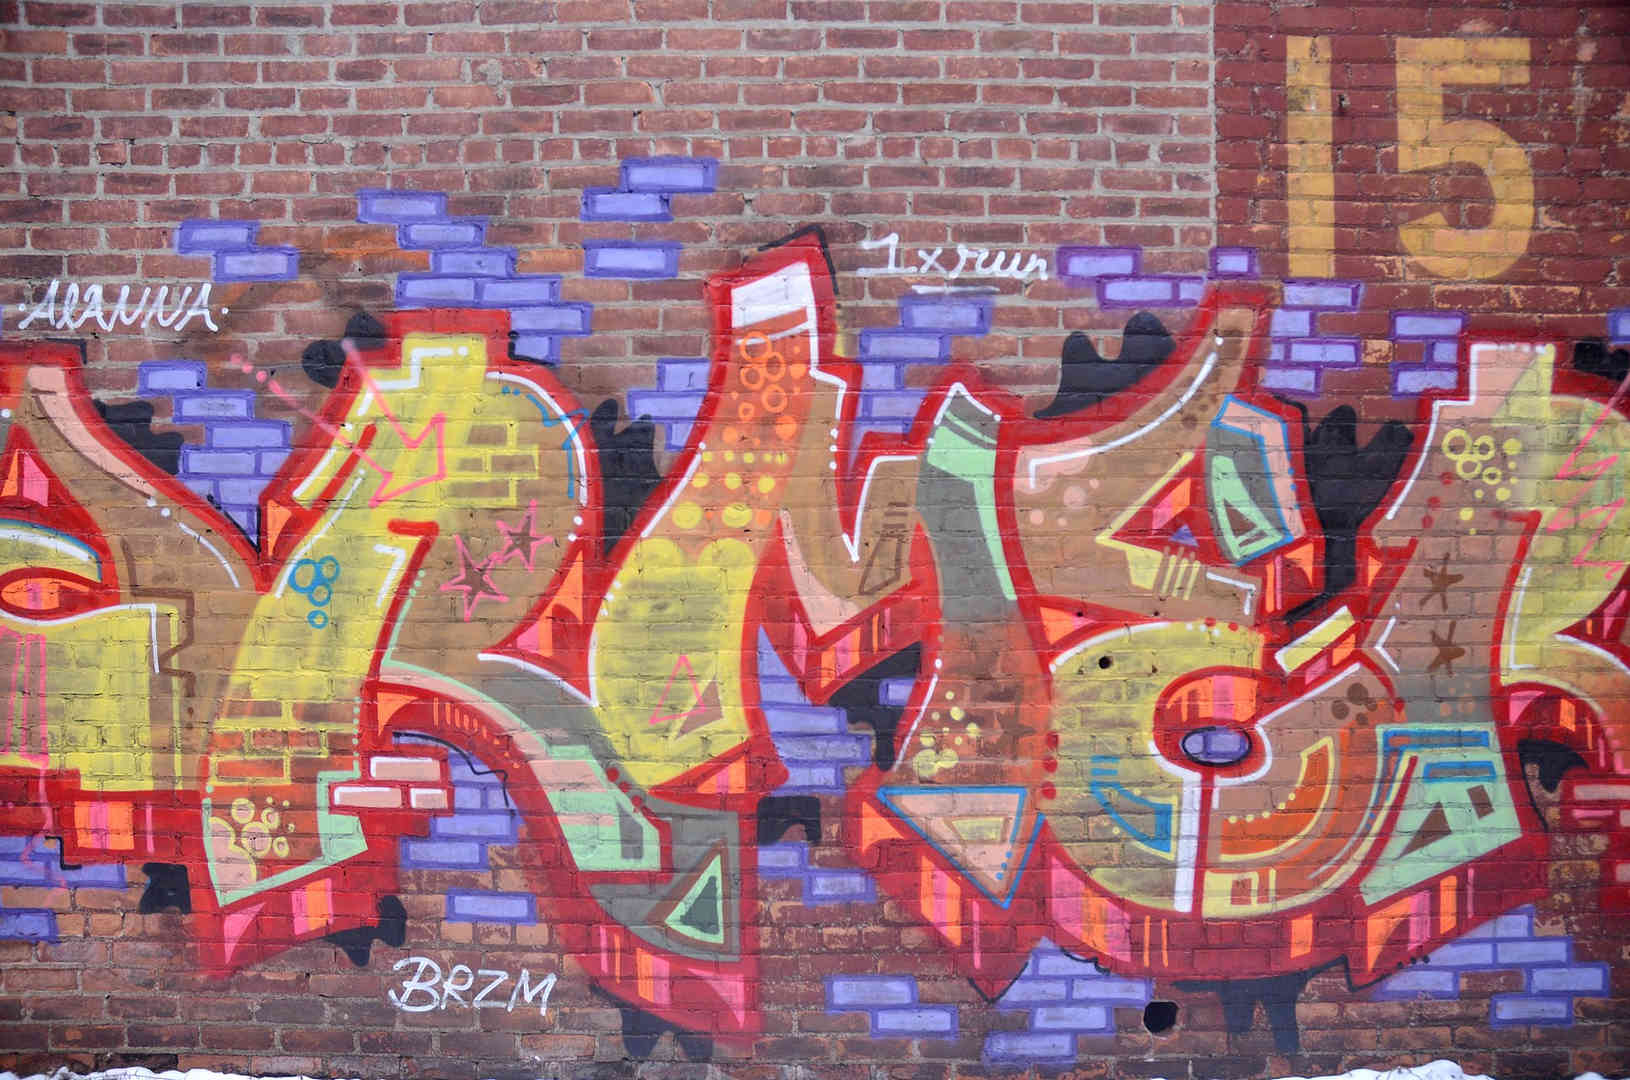 Graffiti on Brick